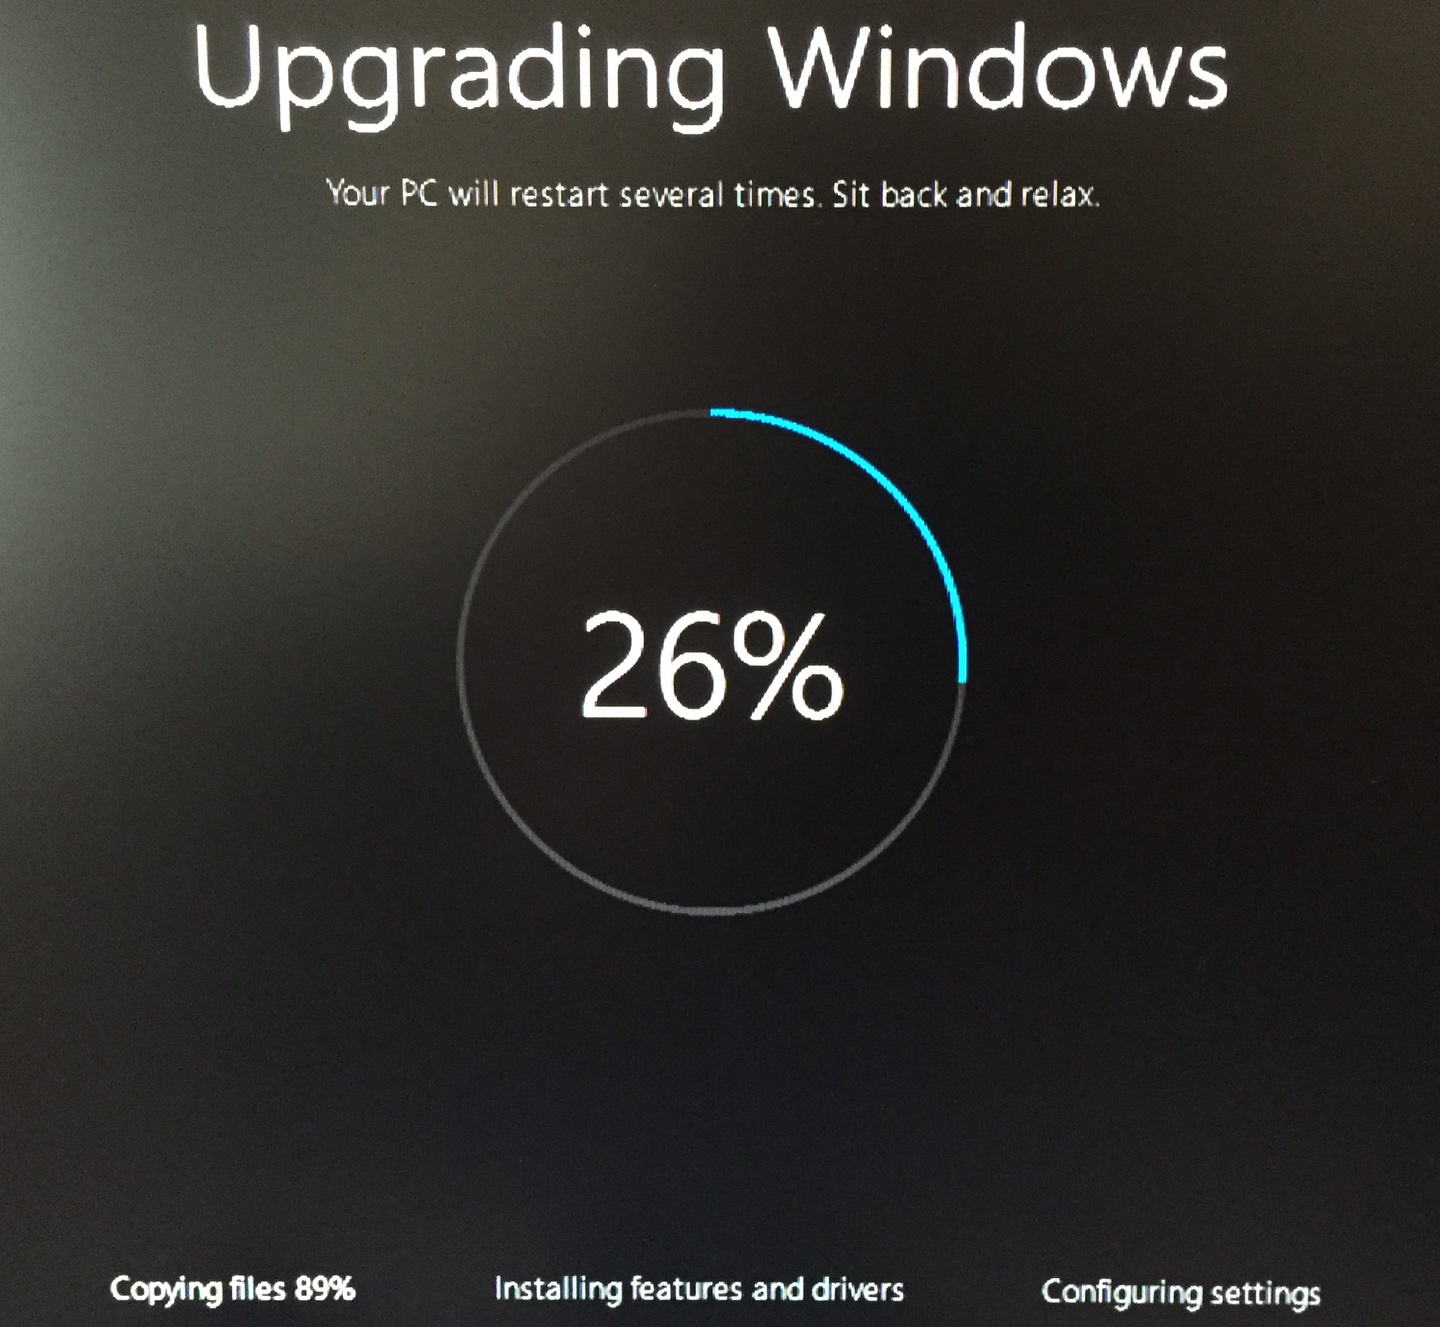 riordan windows operating system upgrade Keep your pc up to date with the best operating system software browse our selection for the latest versions of windows operating systems.